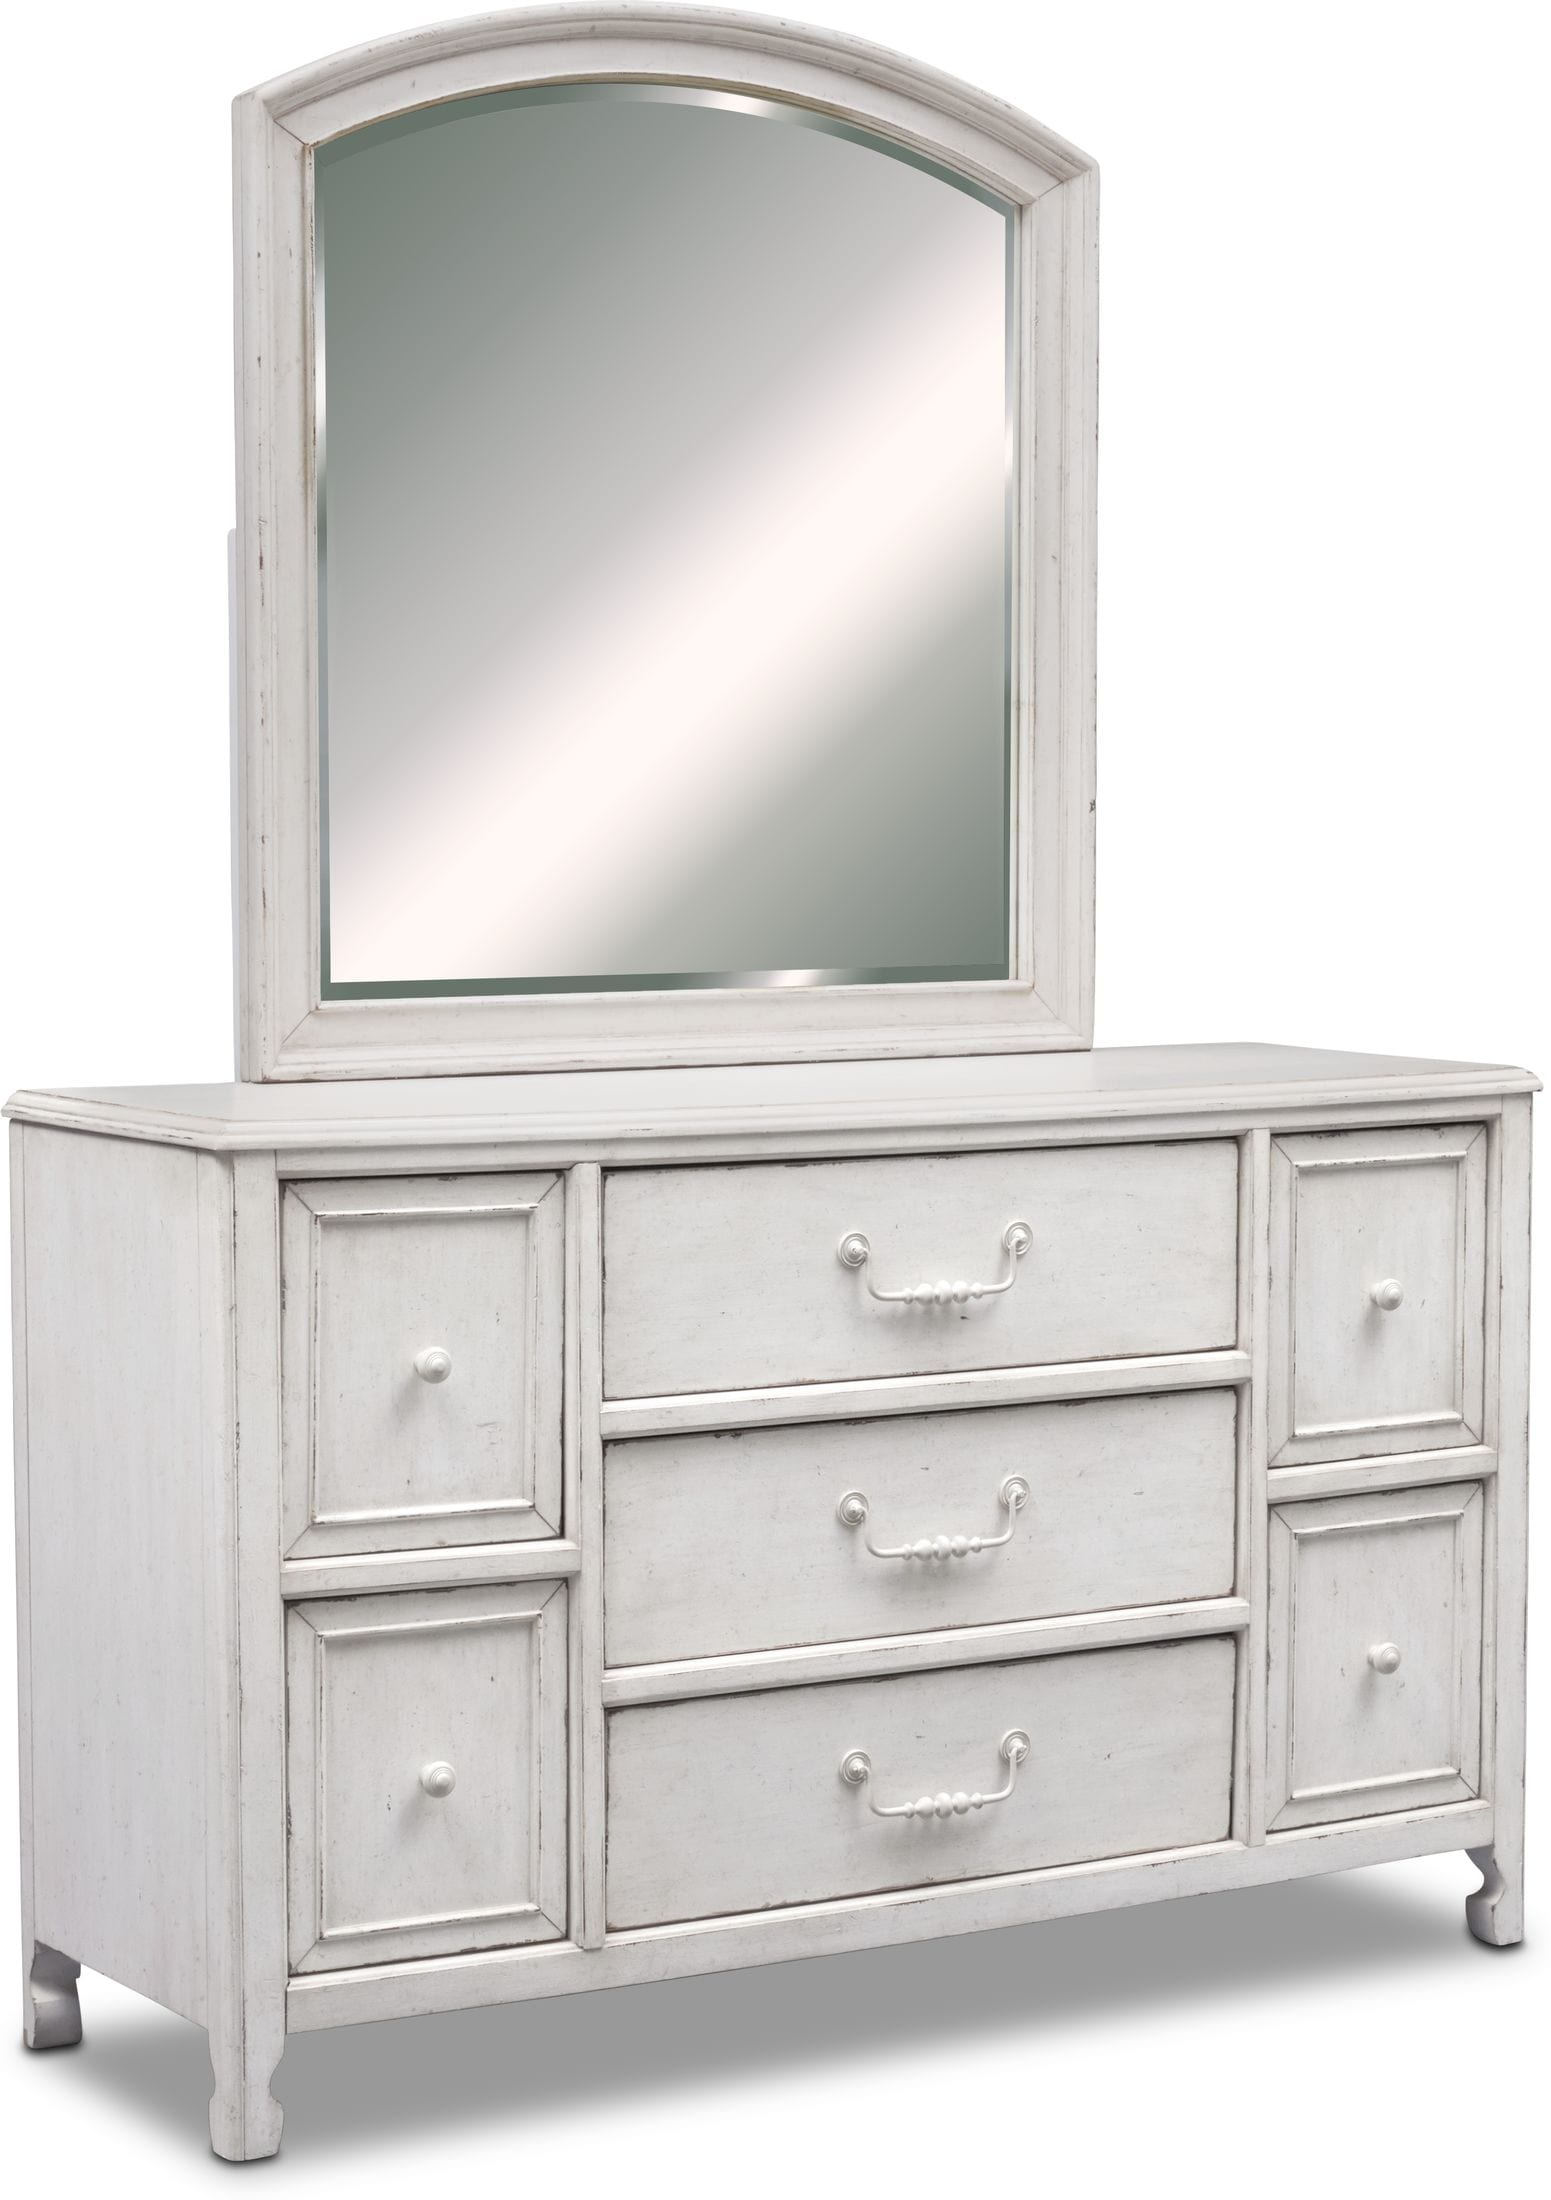 Bedroom Furniture - Florence Dresser and Mirror